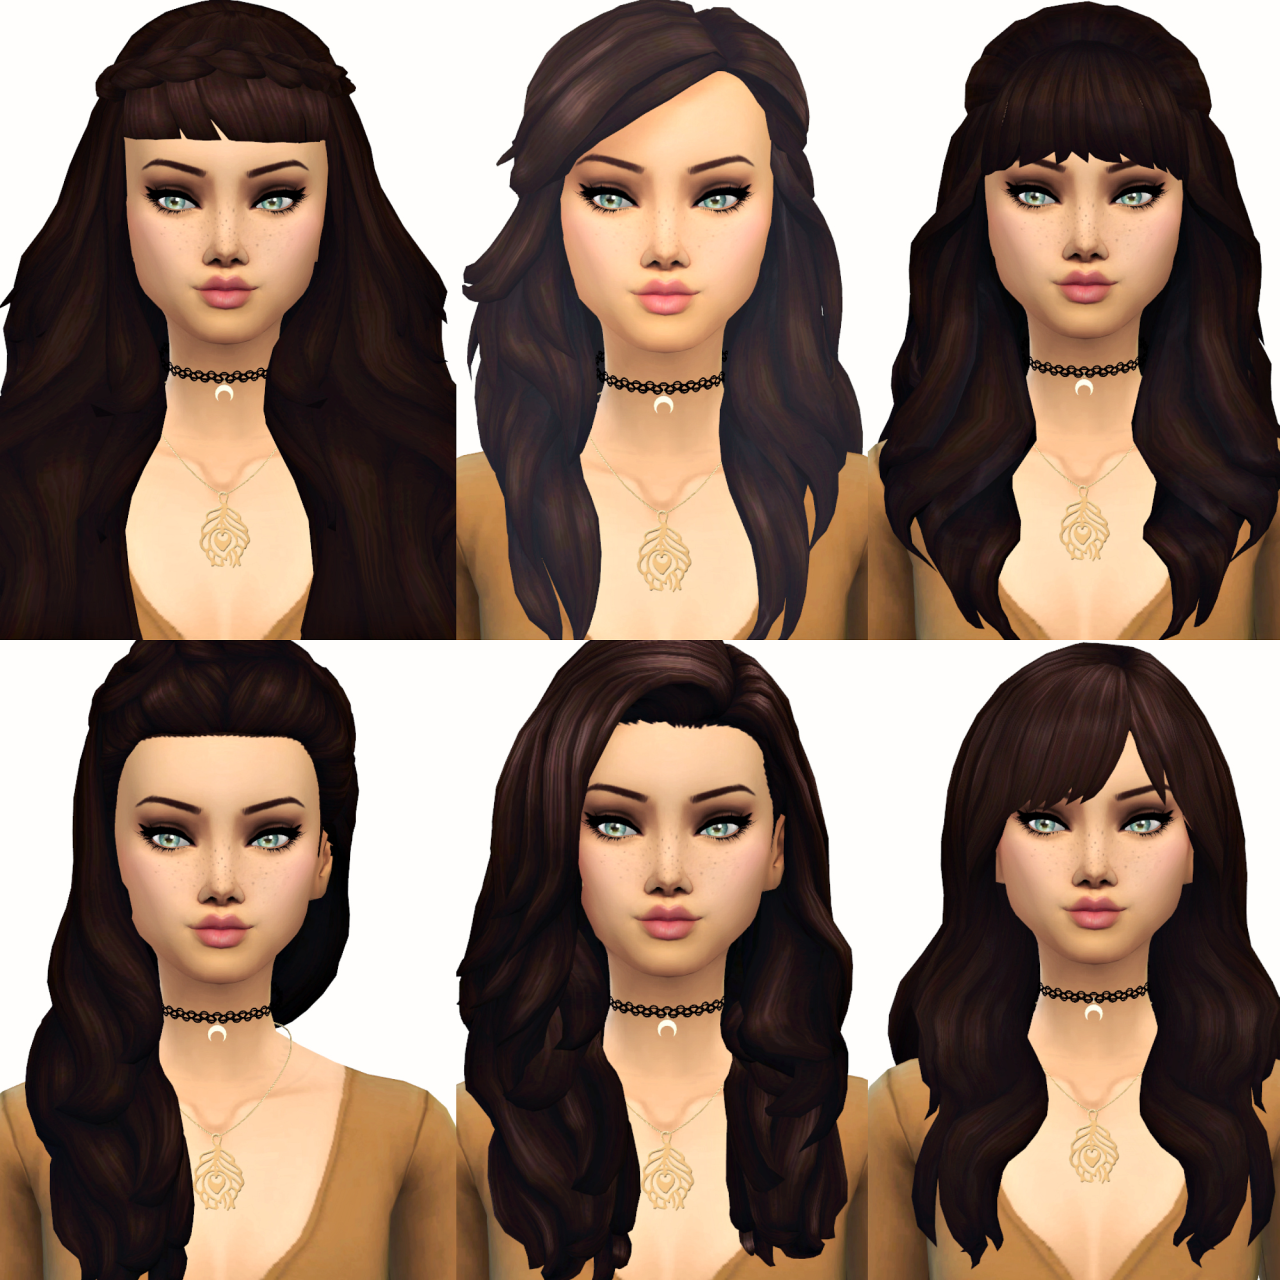 isleroux sims : Photo